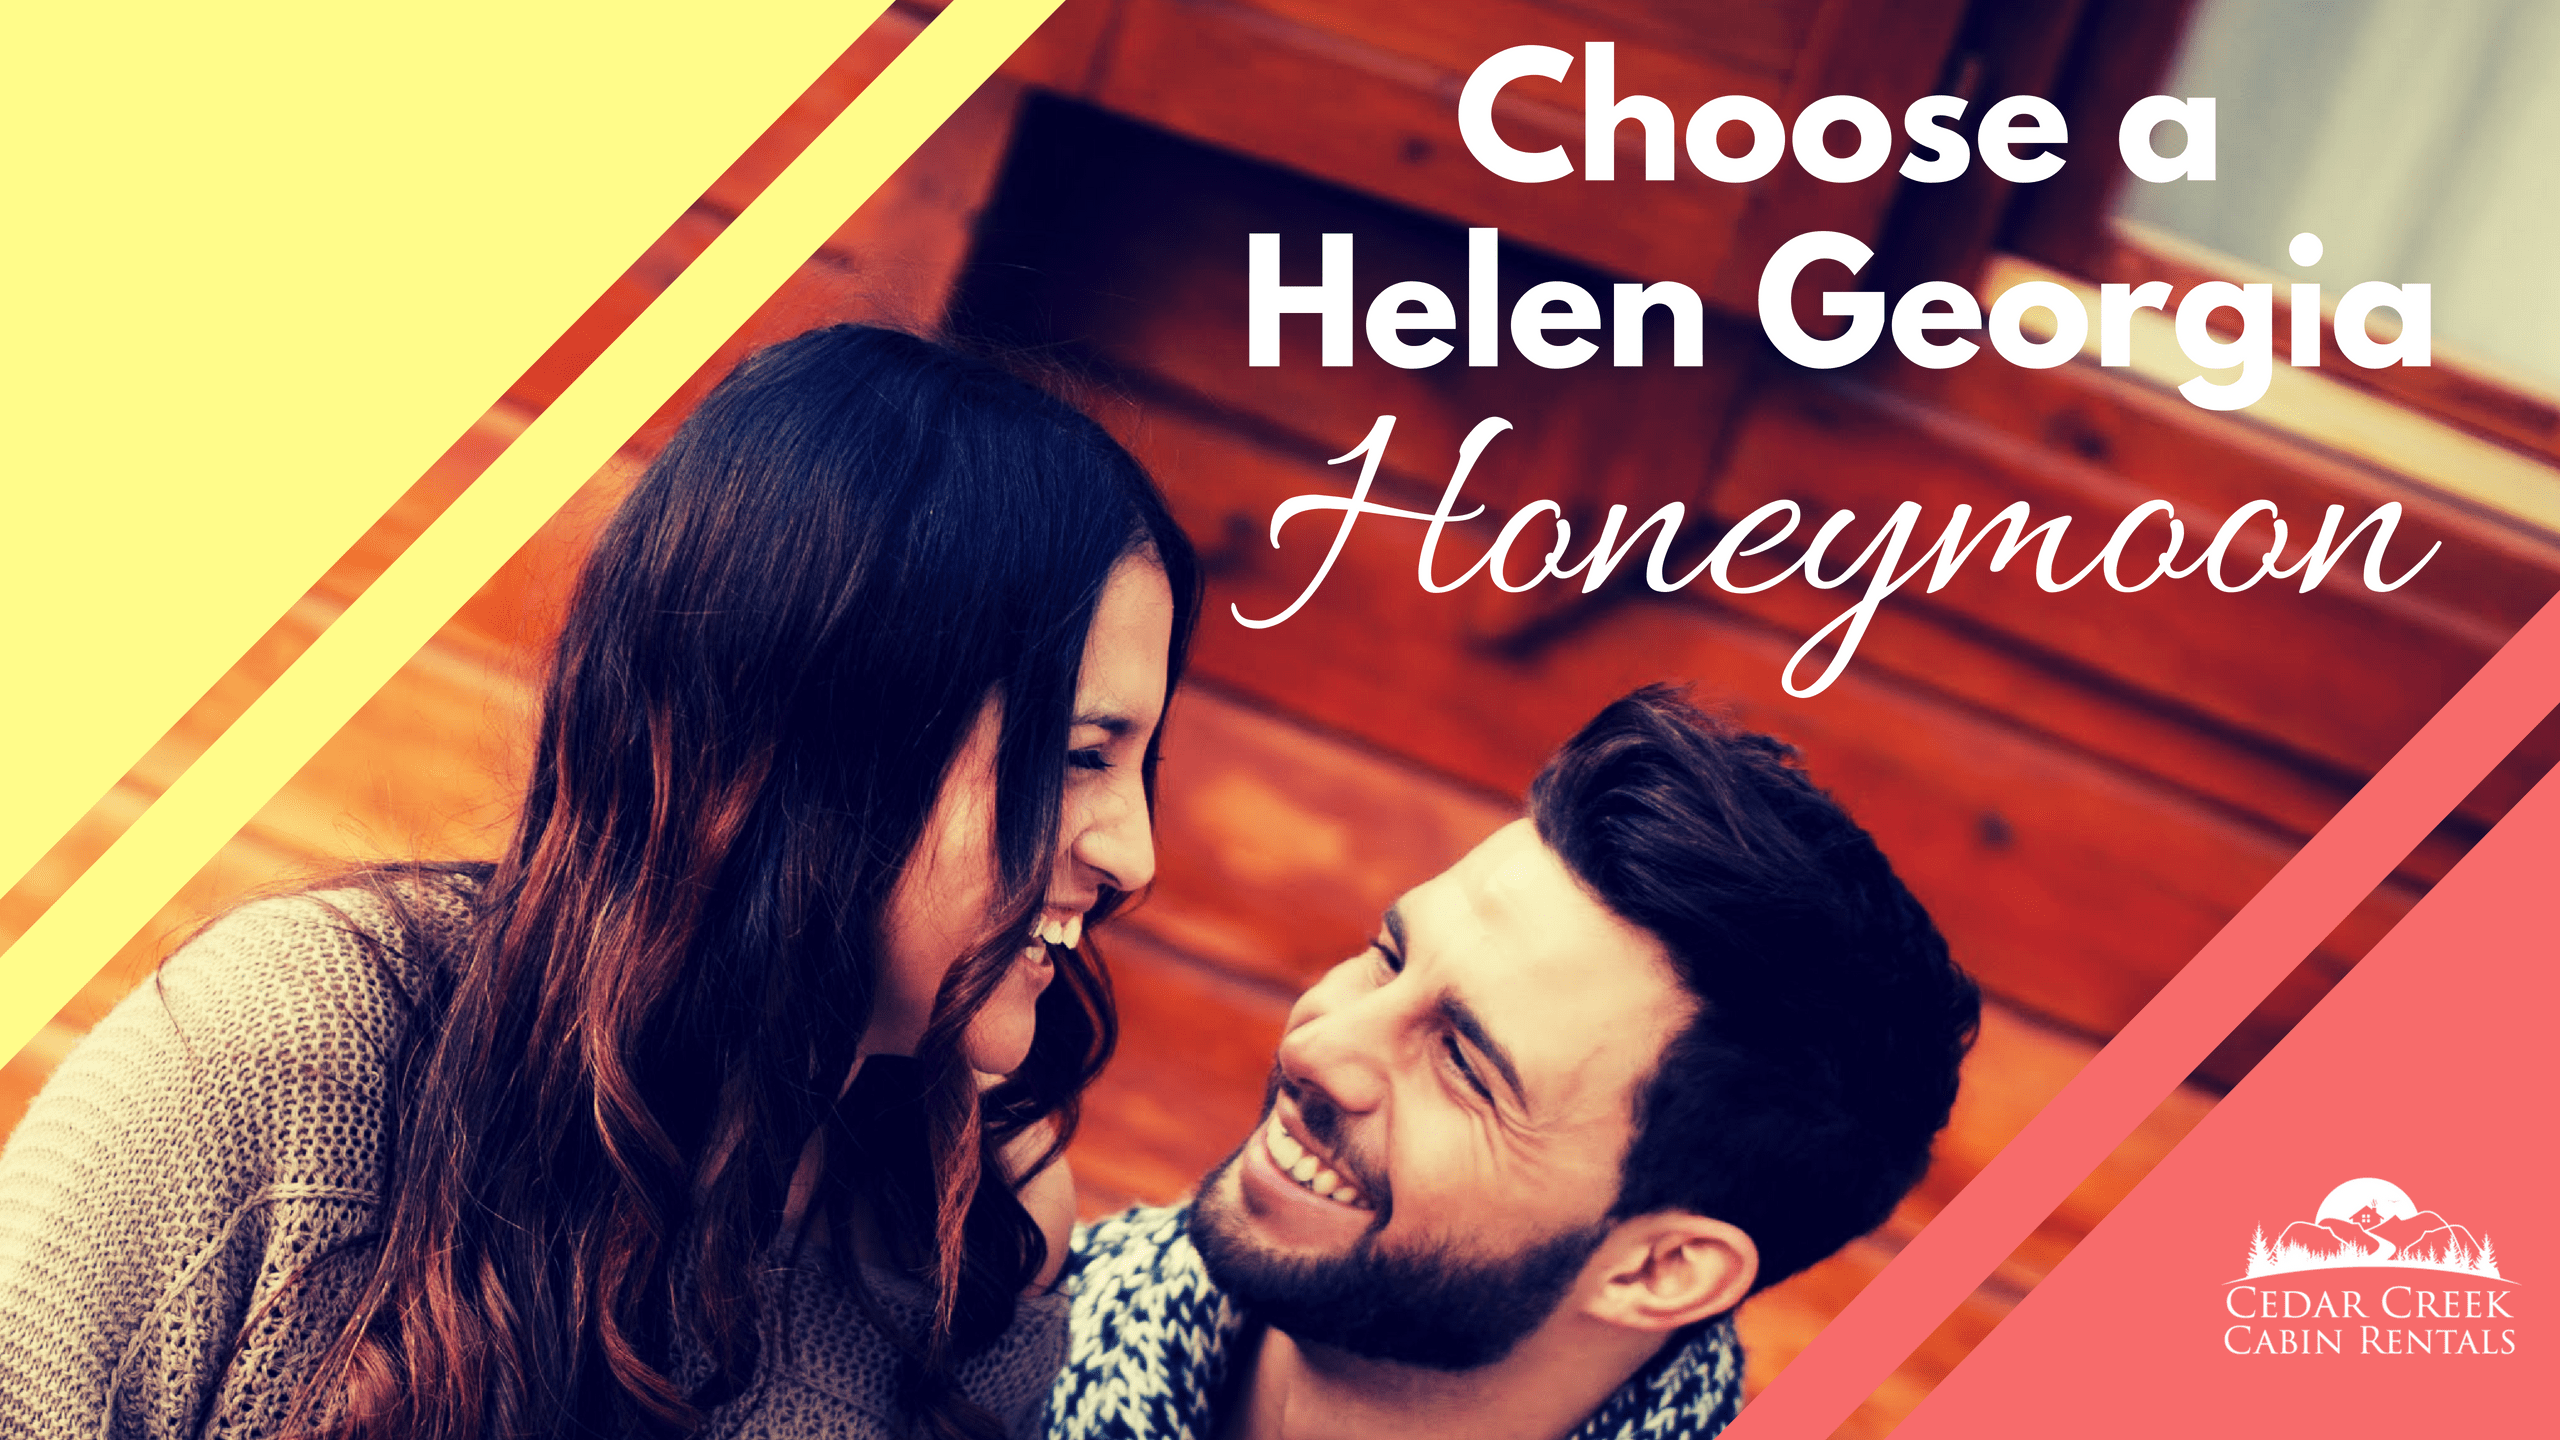 Choose-a-Helen-Georgia-Honeymoon-Blog-Banner